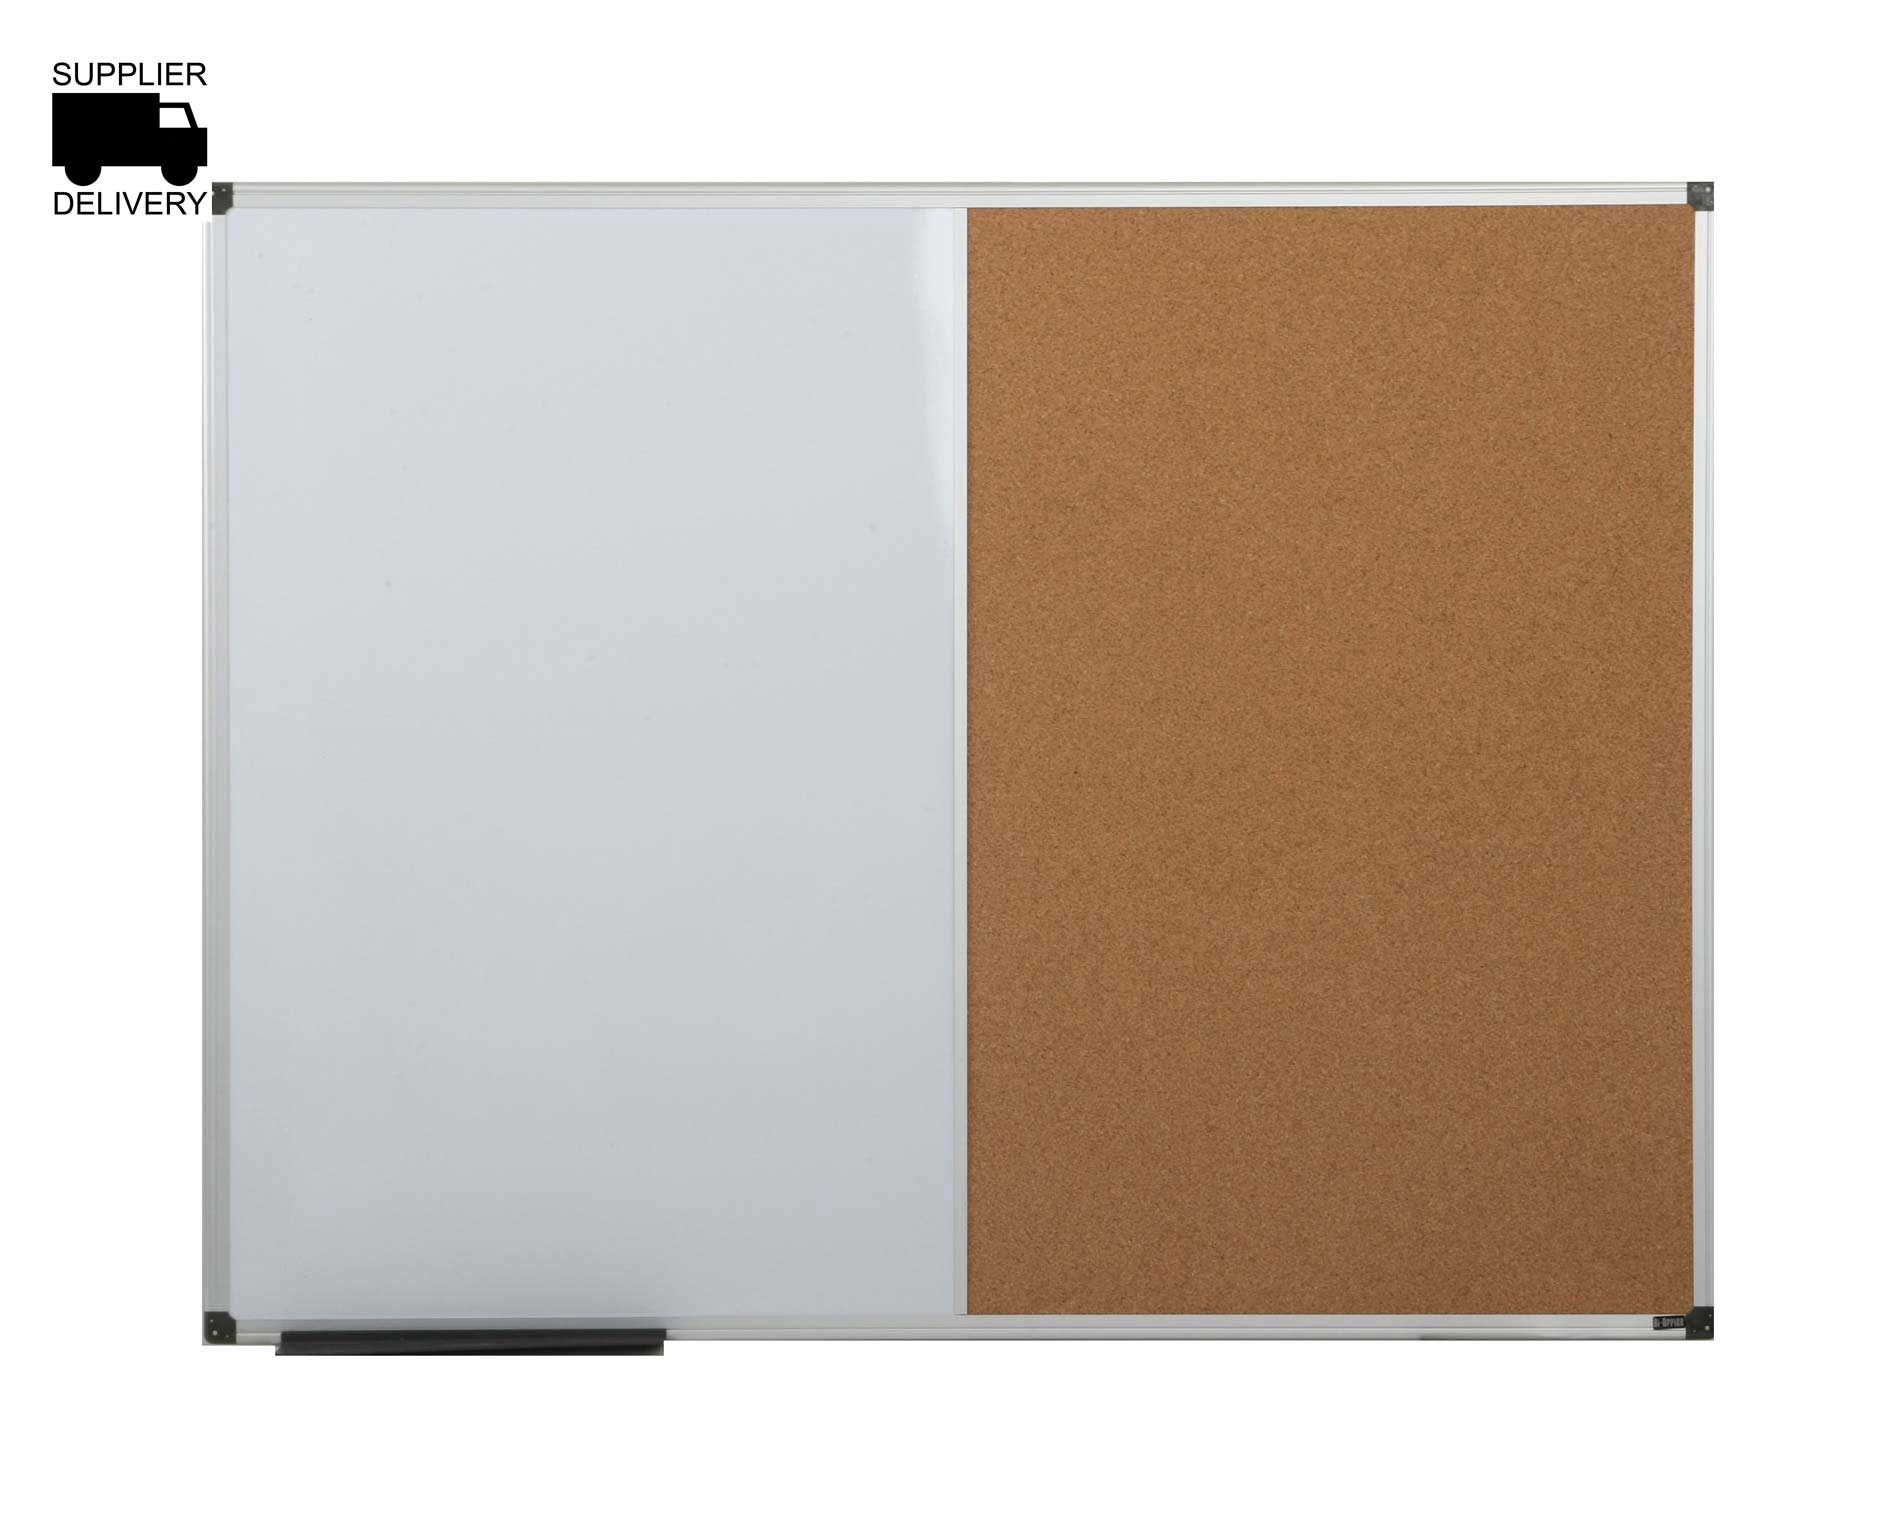 bi-office cork and magnetic dry wipe combination notice board 1200x900mm aluminium